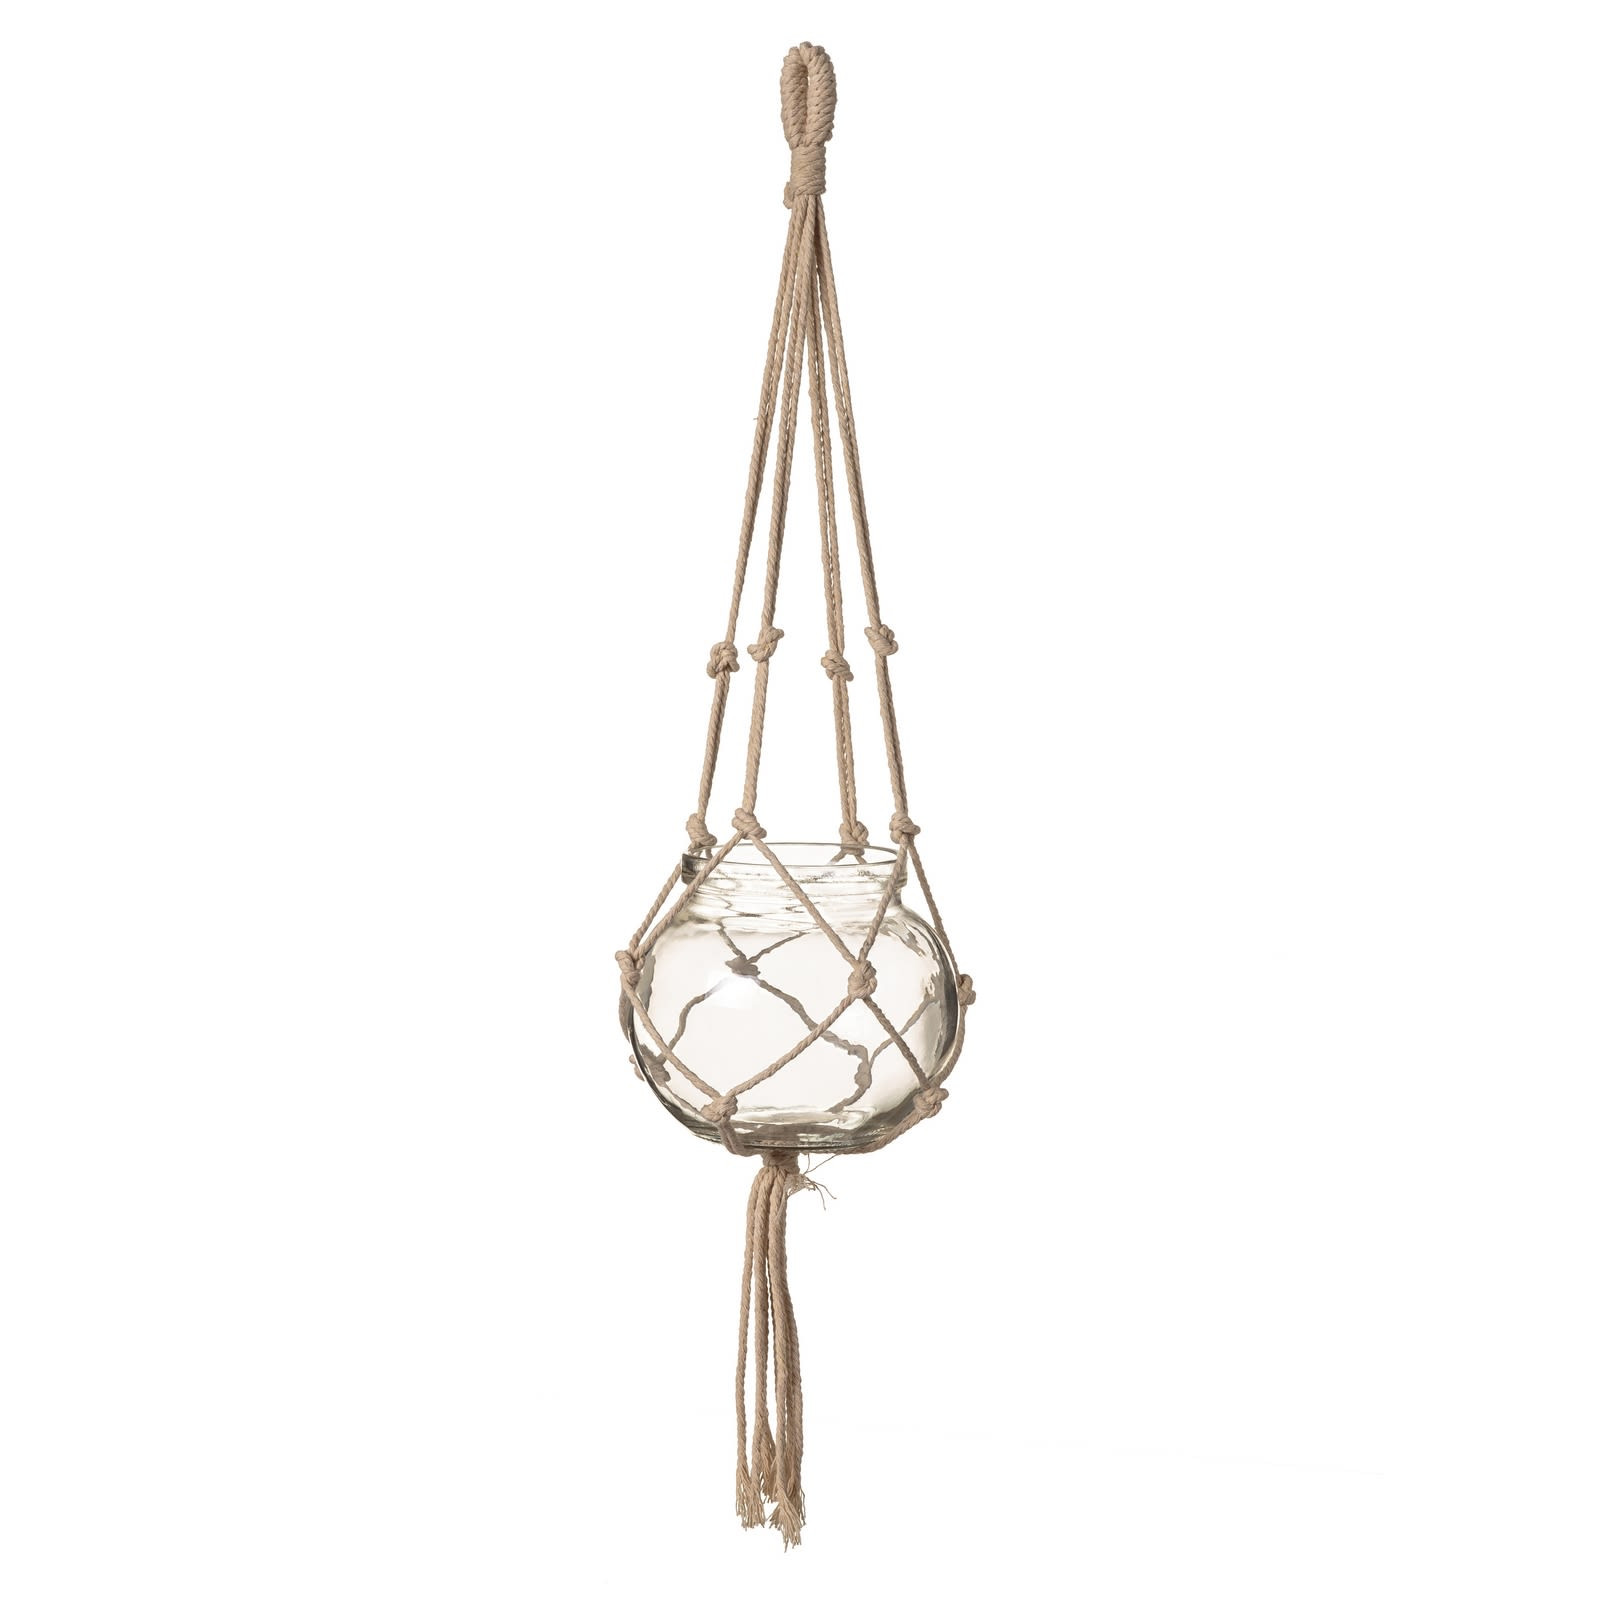 Porta-candles Decoration Hanging Crystal Chandelier Decorative Crystal Hanging 15x15x13 cm